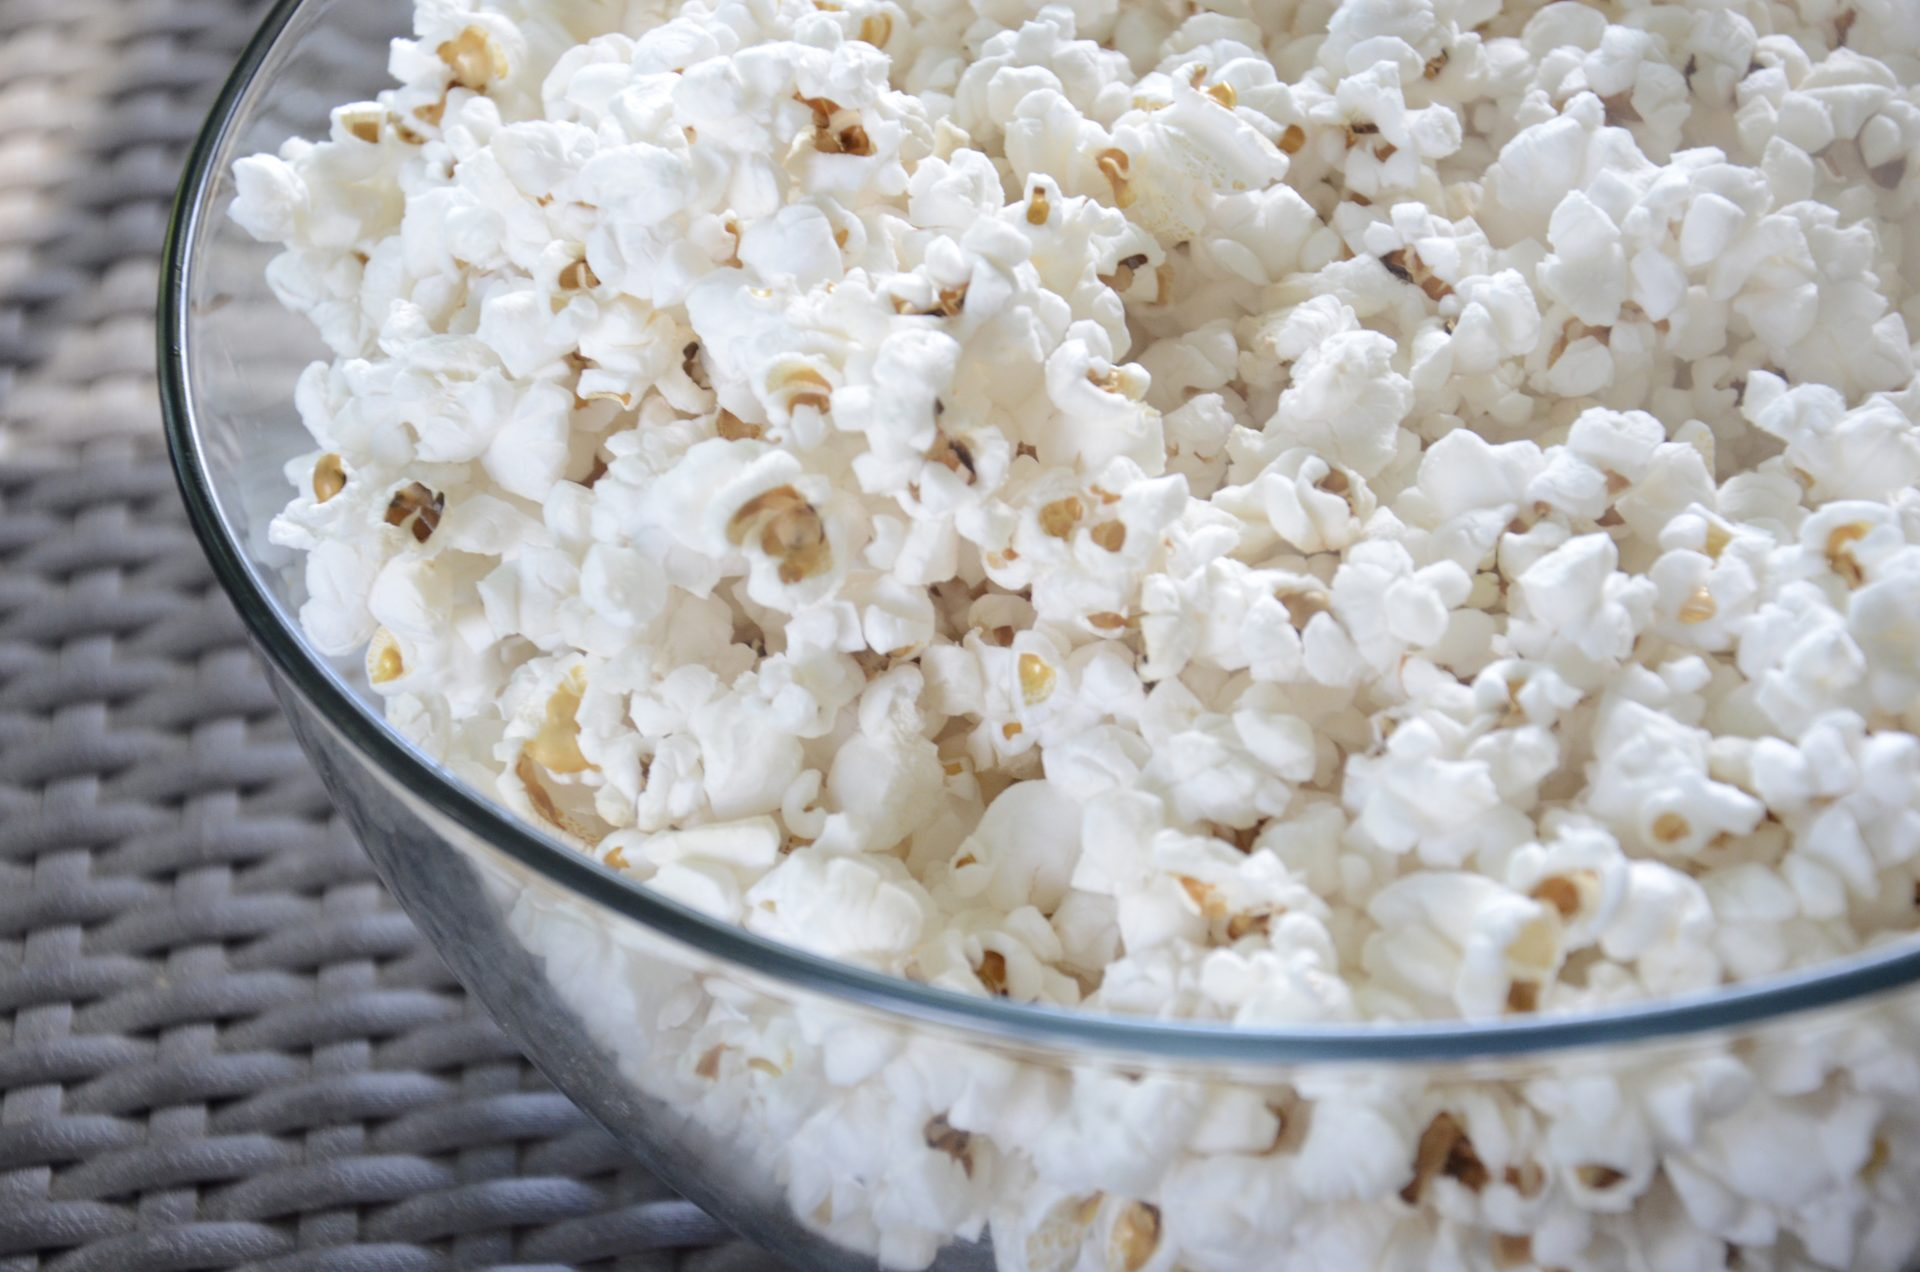 Popcorn in a large glass bowl